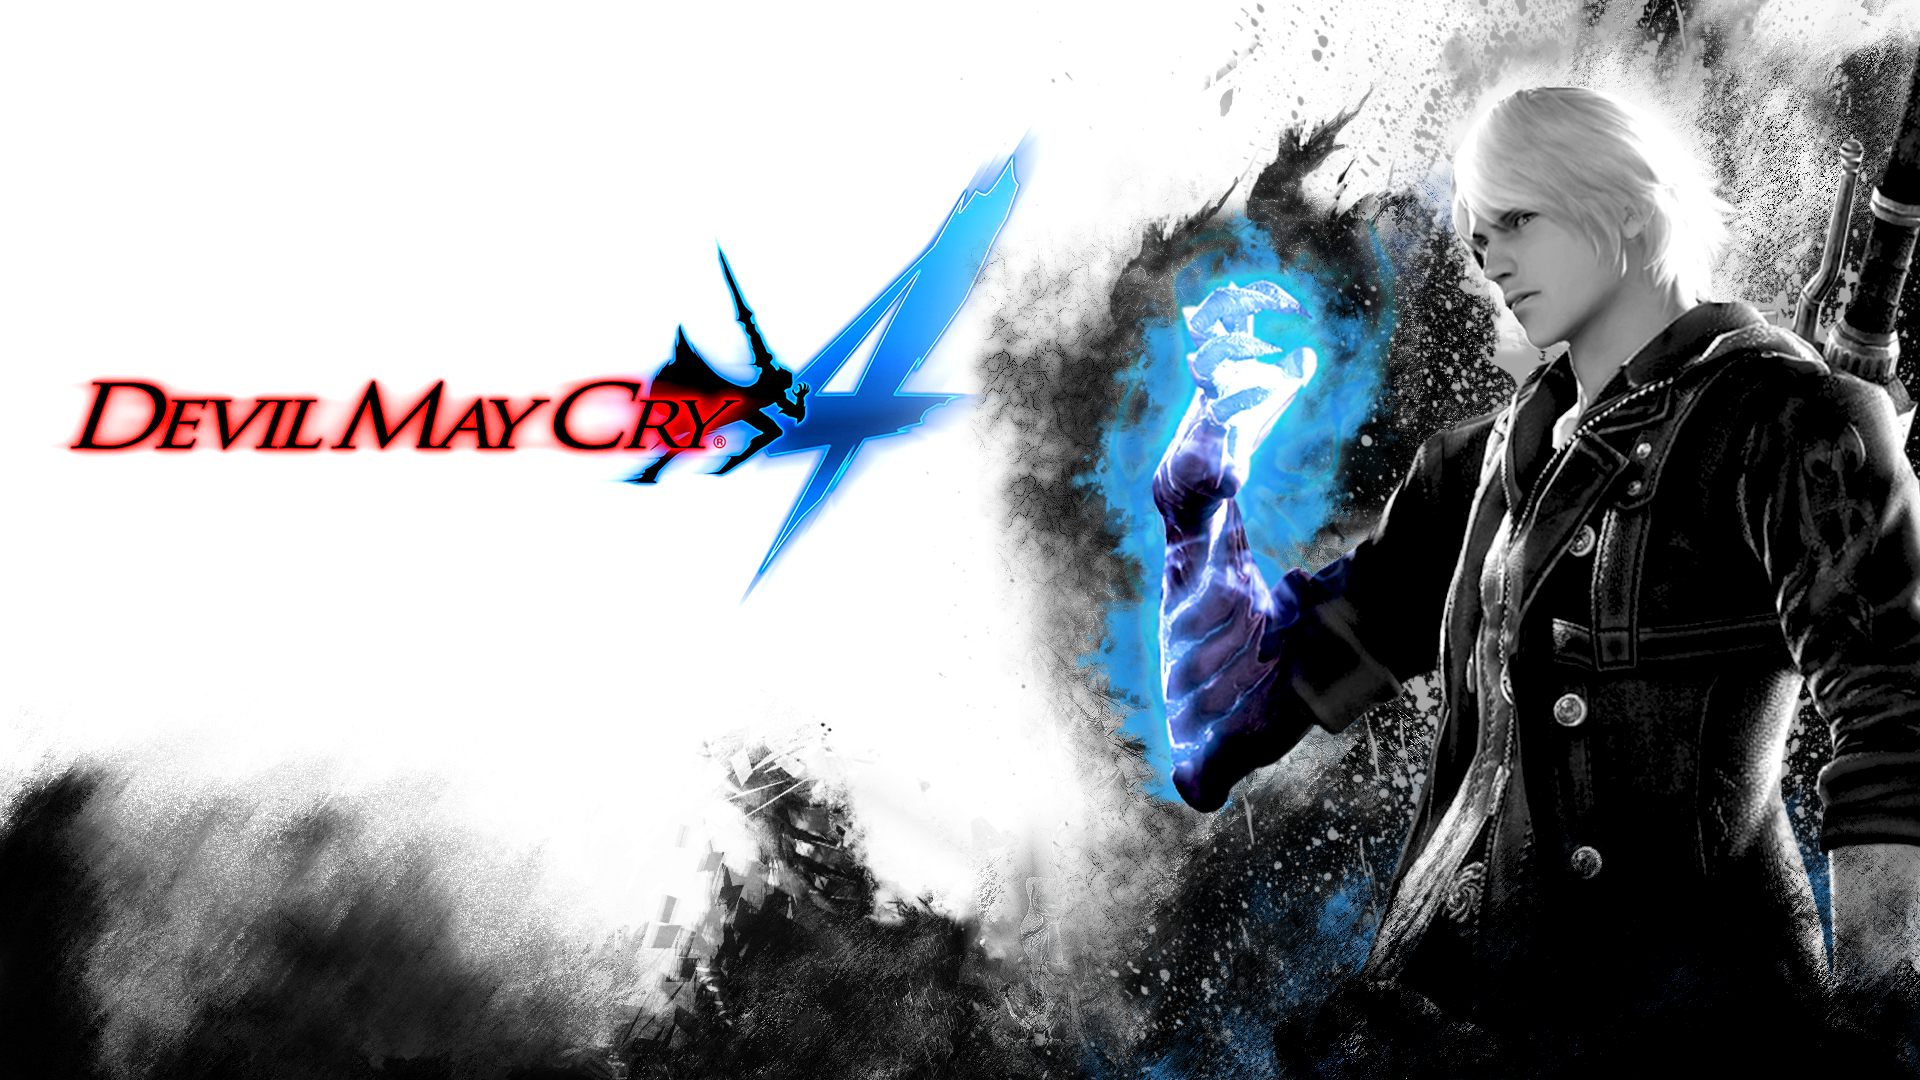 Devil May Cry 4 Nero Fondo De Pantalla Hd Fondo De